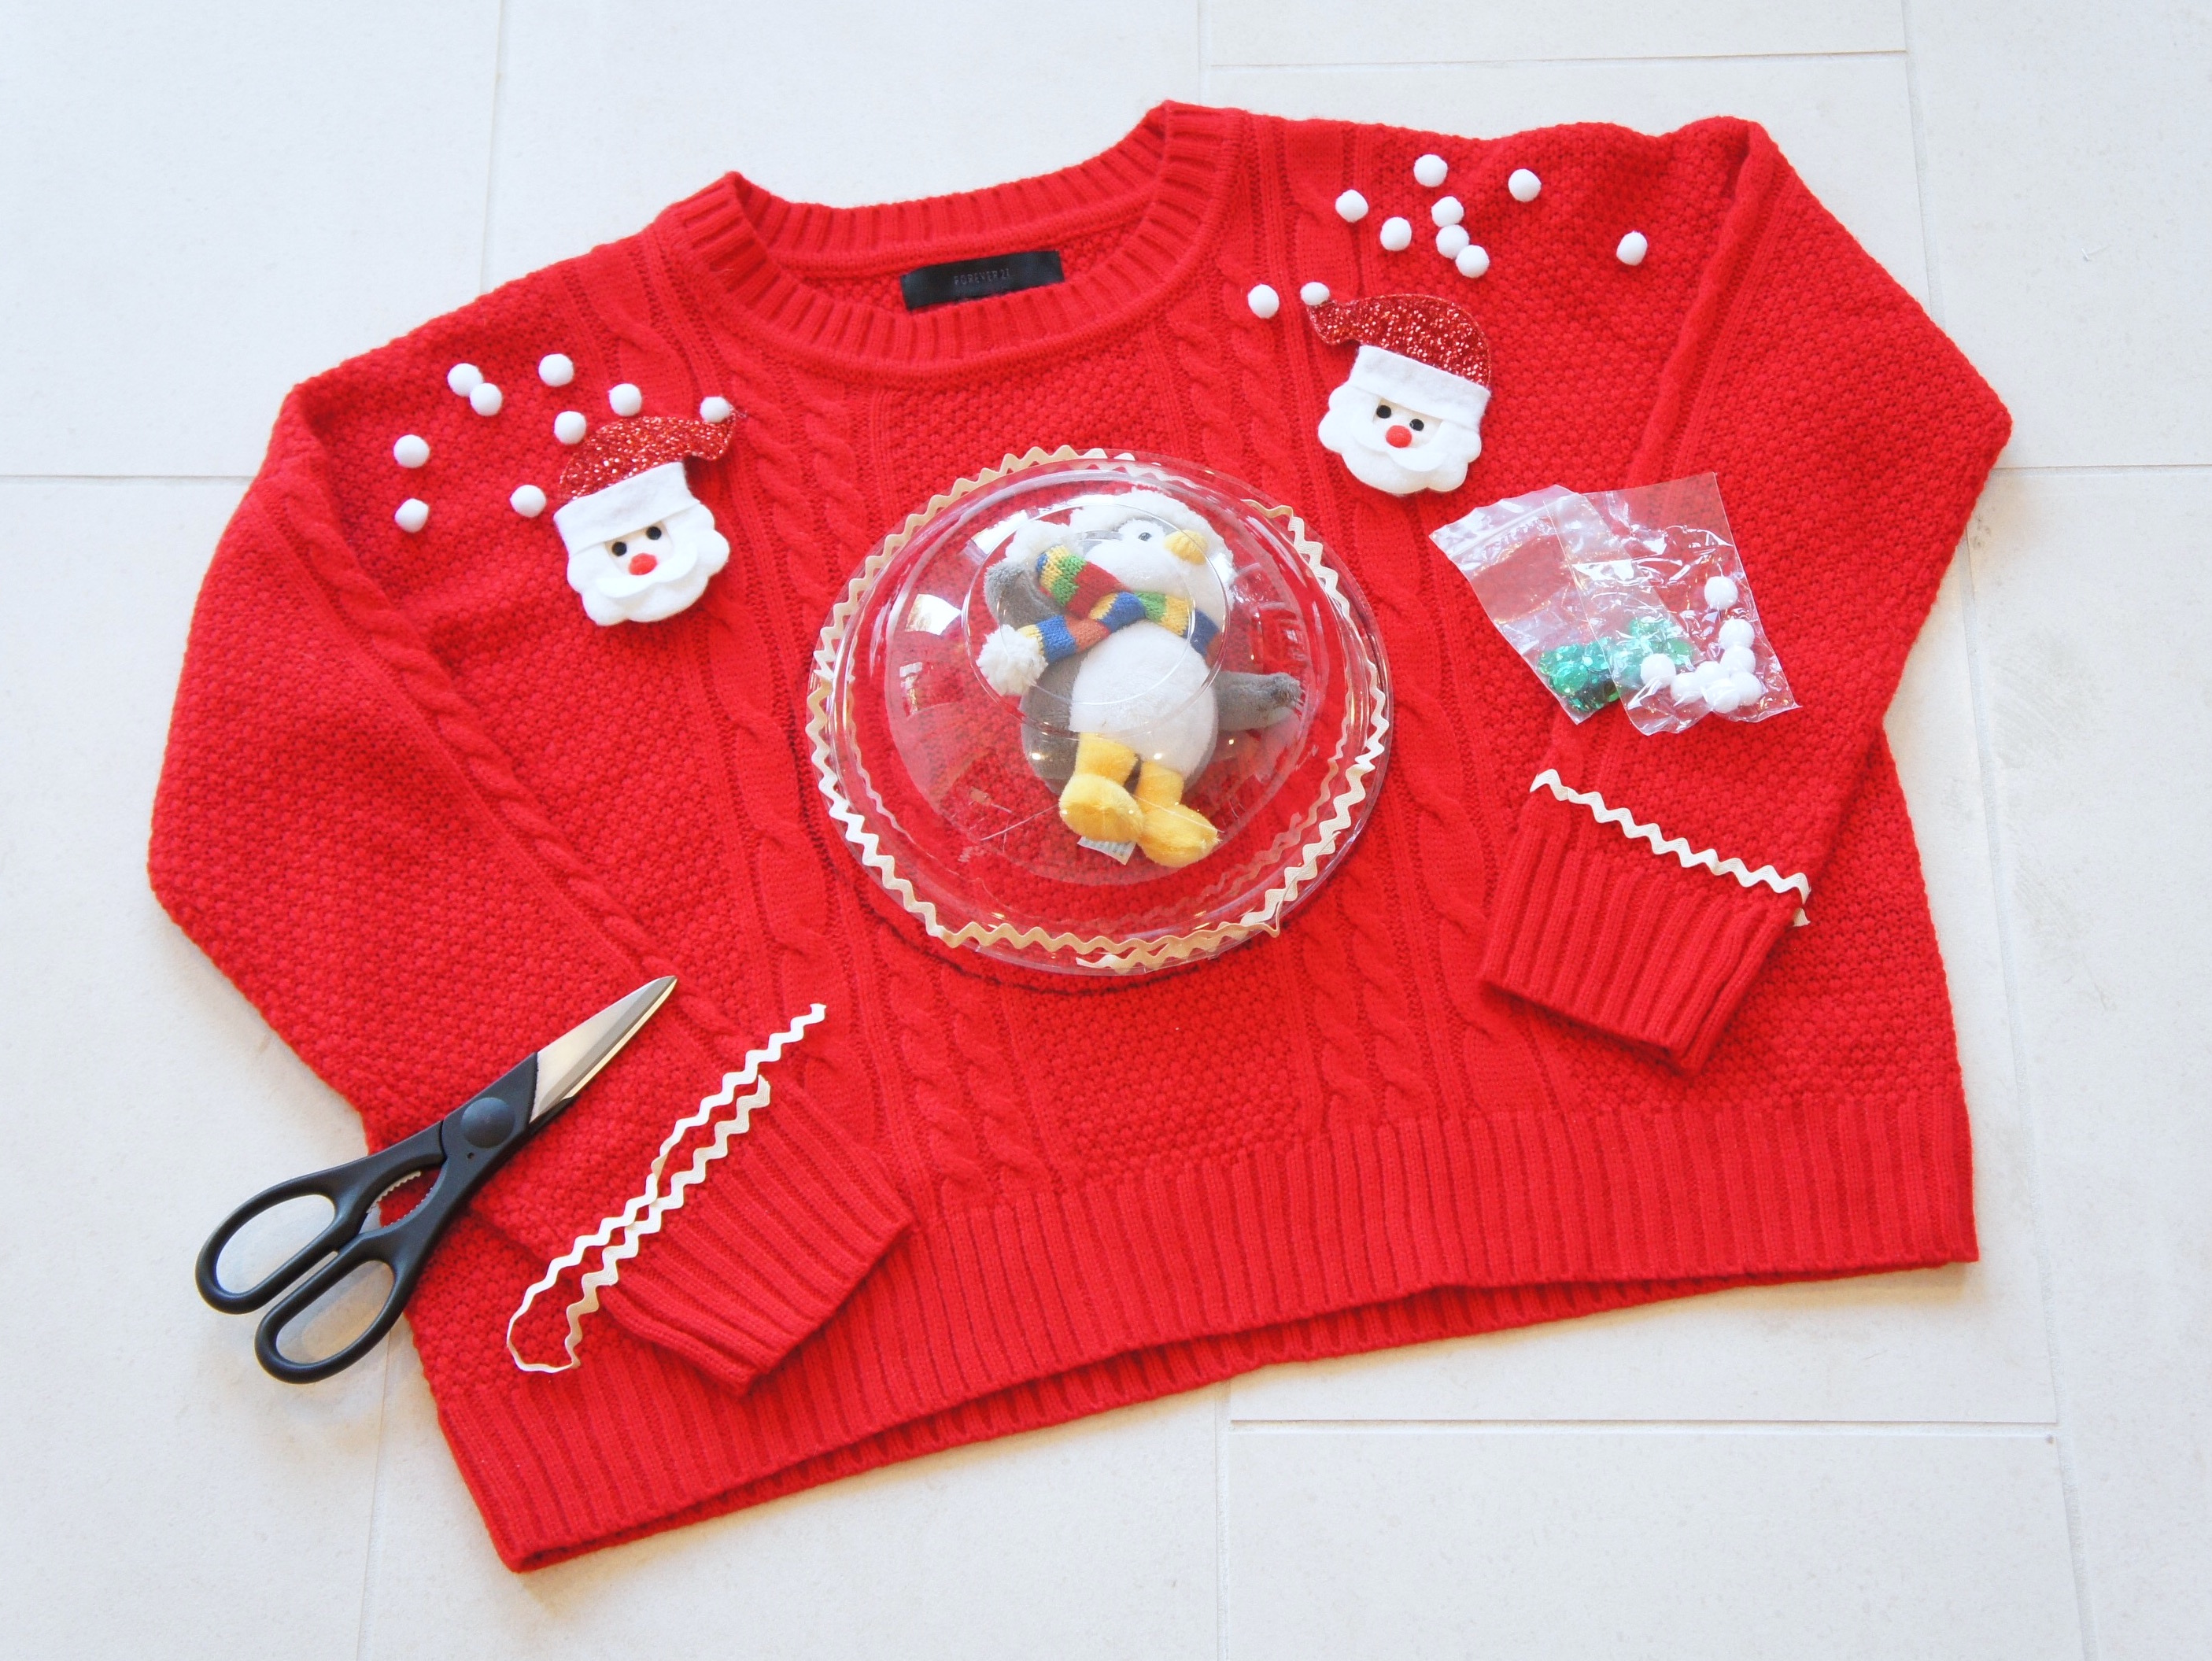 Exceptional Baby Diy Ugly Sweater Pregnant Step Diy Ugly Sweater Diy Ugly Sweater Front Center Diy Ugly Sweater inspiration Diy Ugly Christmas Sweater